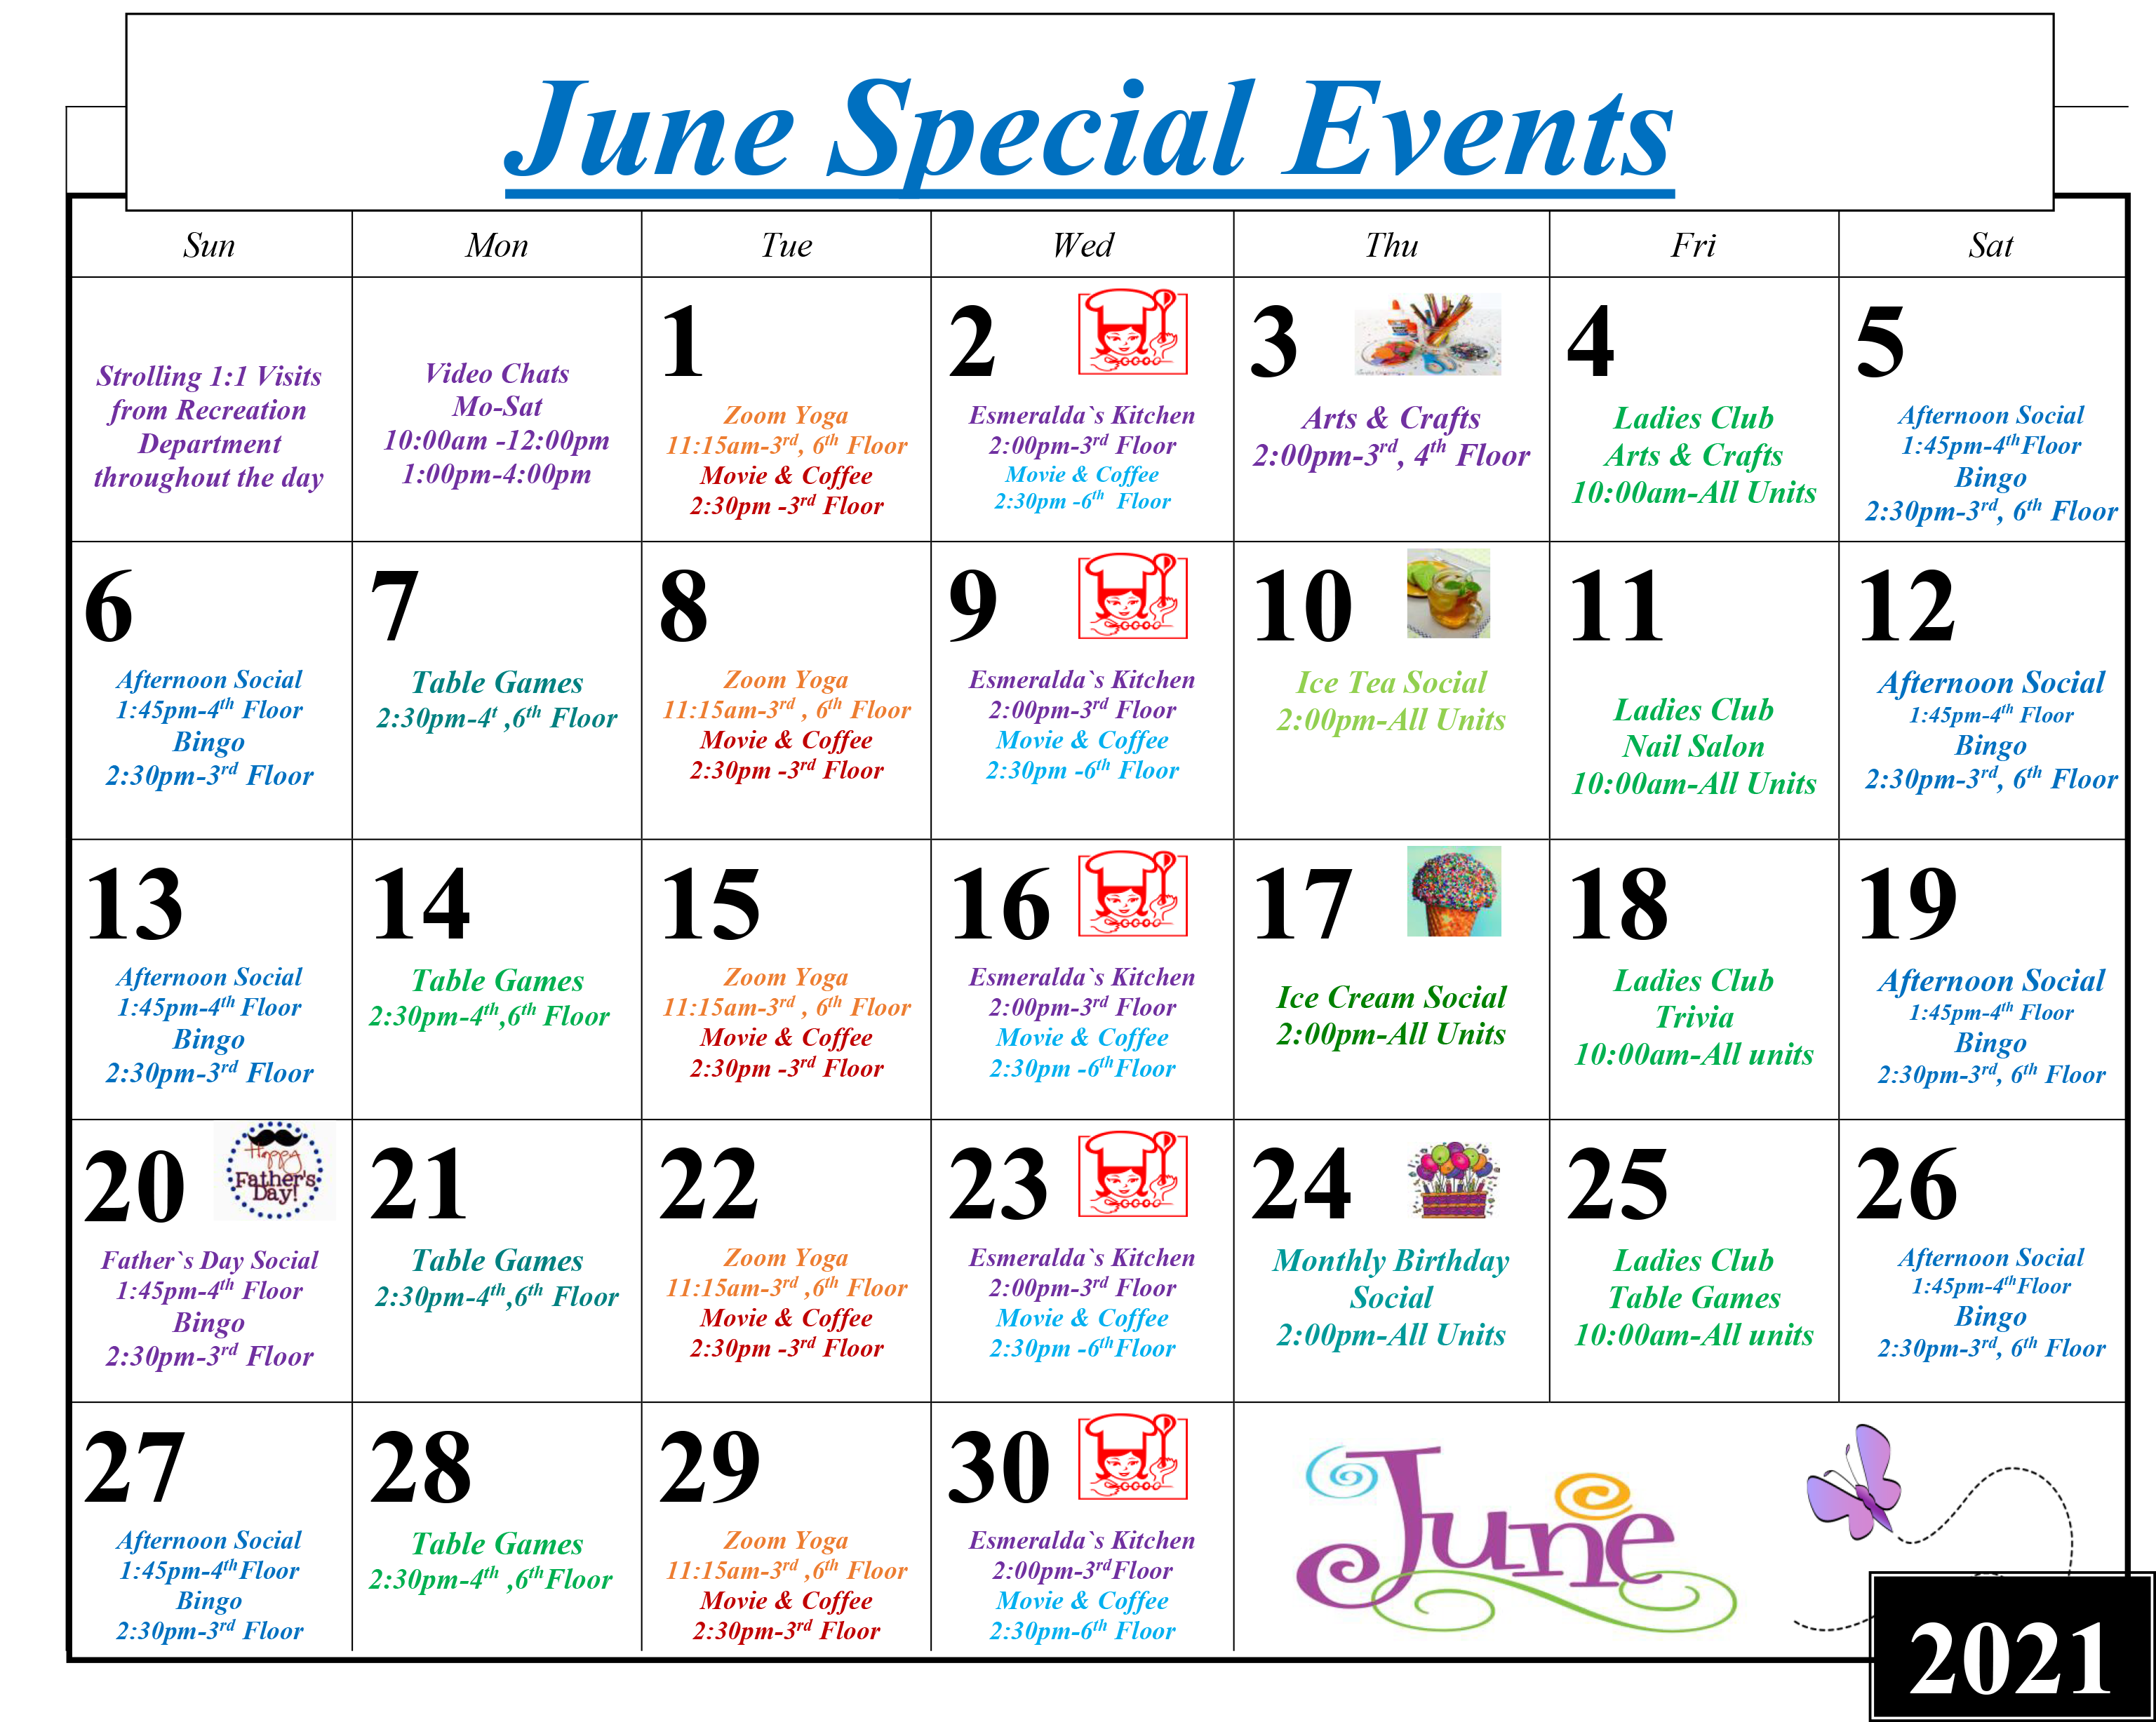 Throgs Neck Special Events June 2021